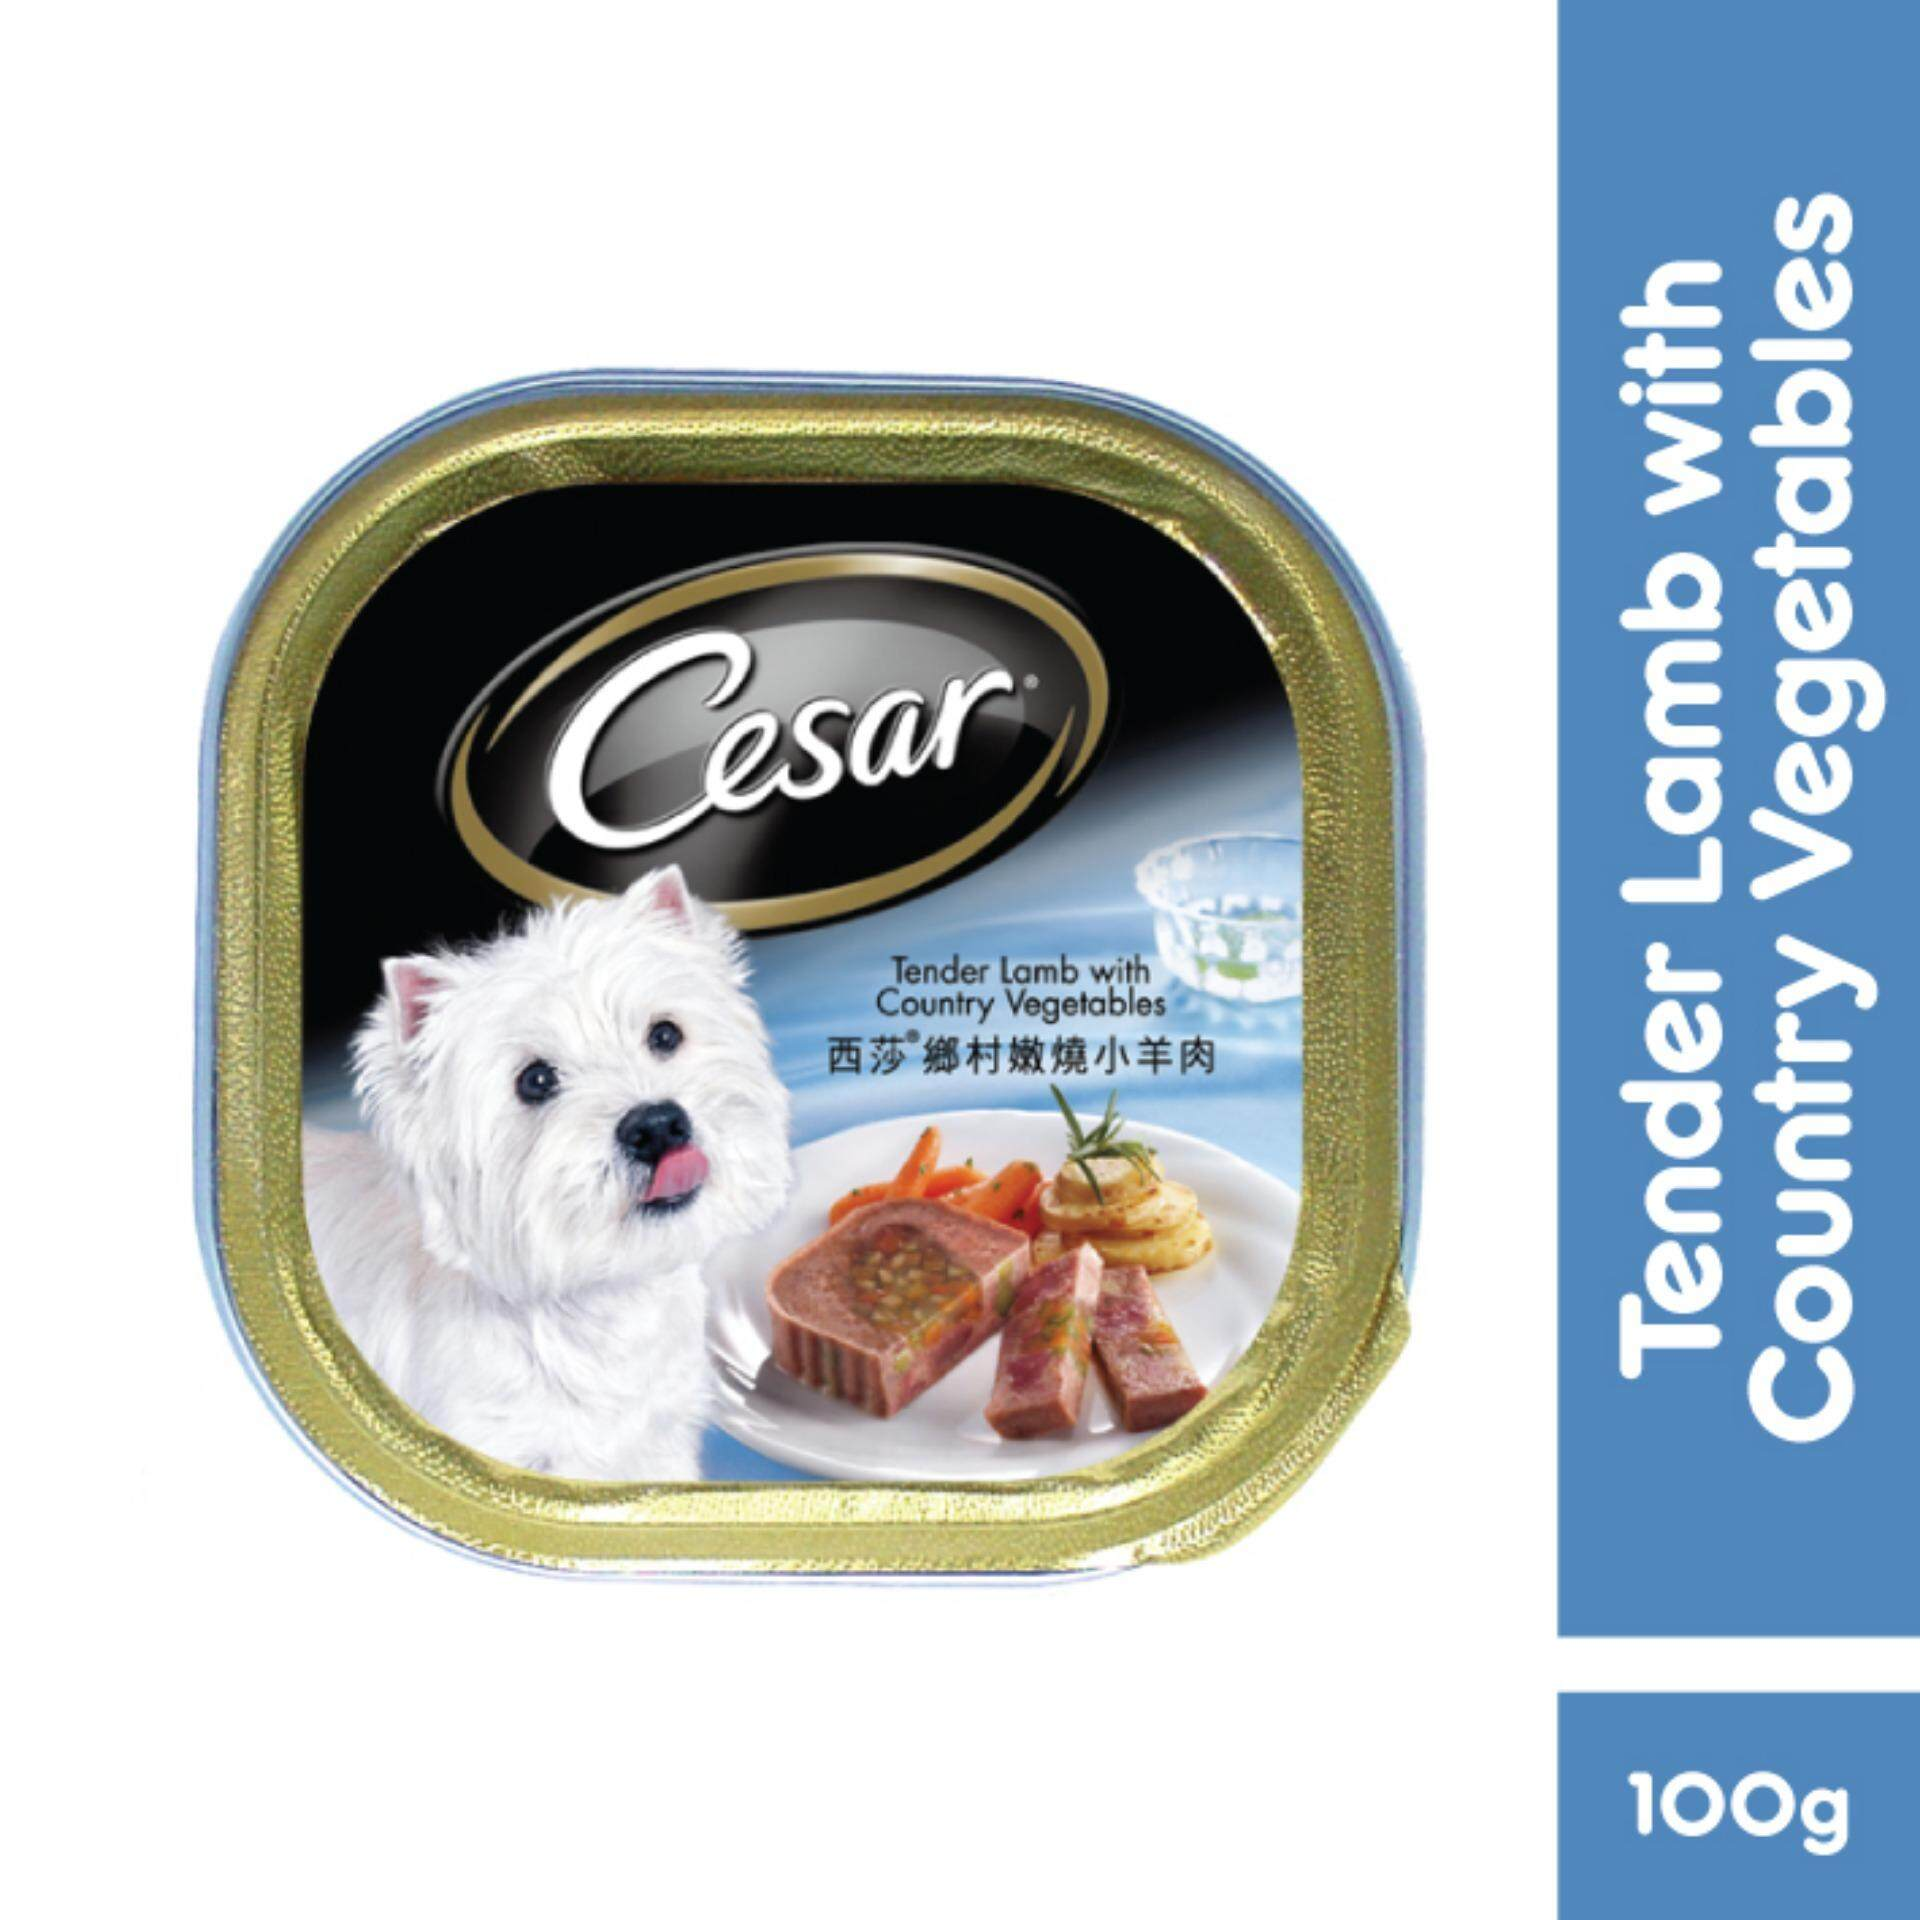 Cesar Dog Food Distributor Malaysia Will Be A Thing Of The